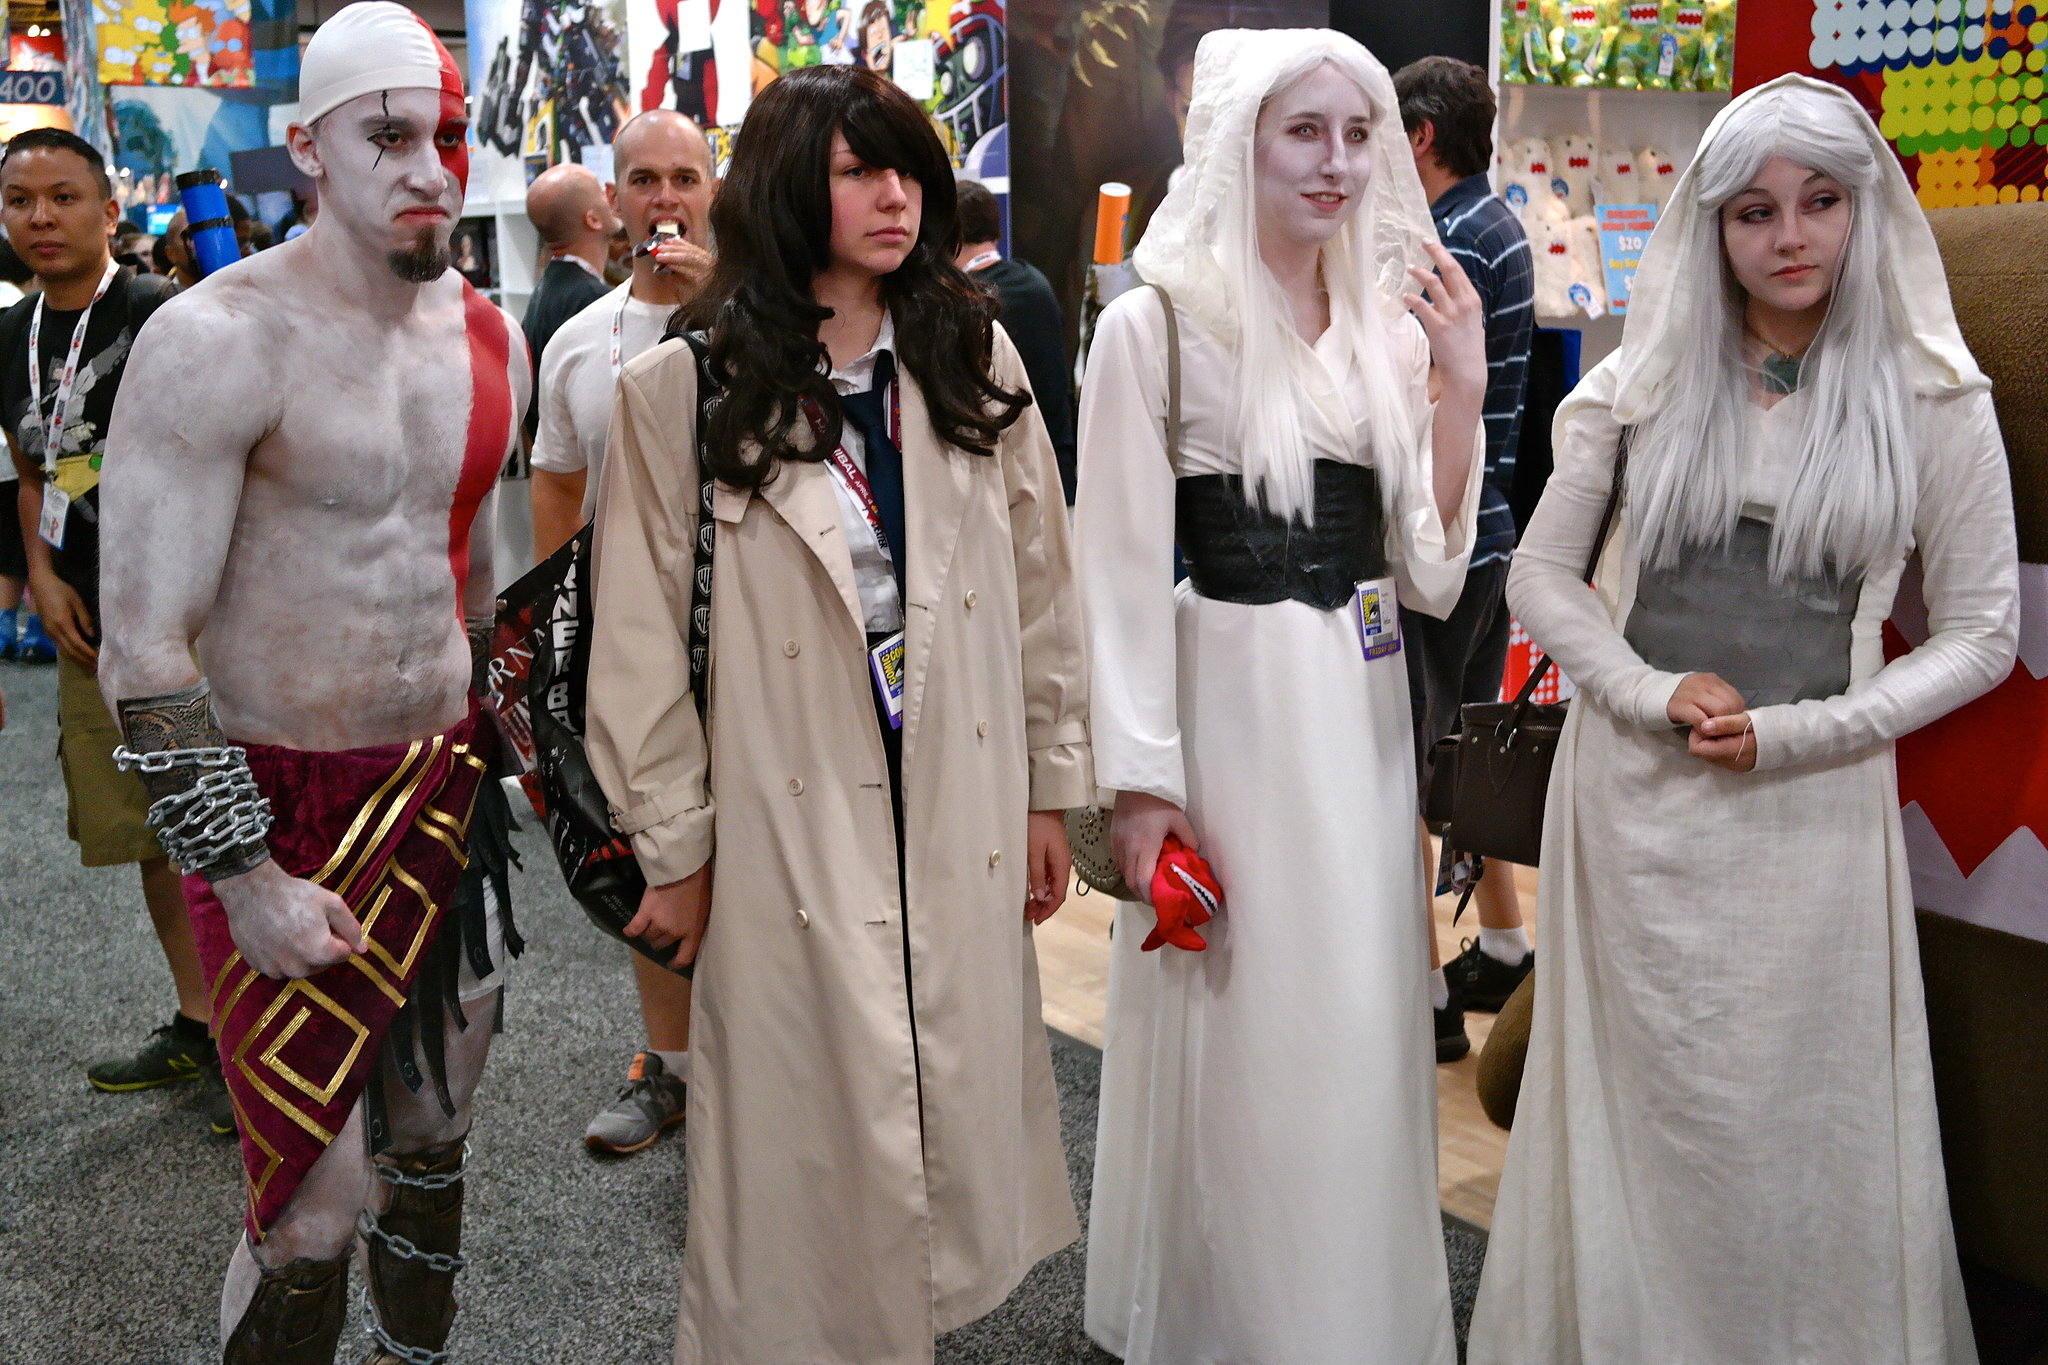 Group cosplay certainly makes for a more dramatic entrance.